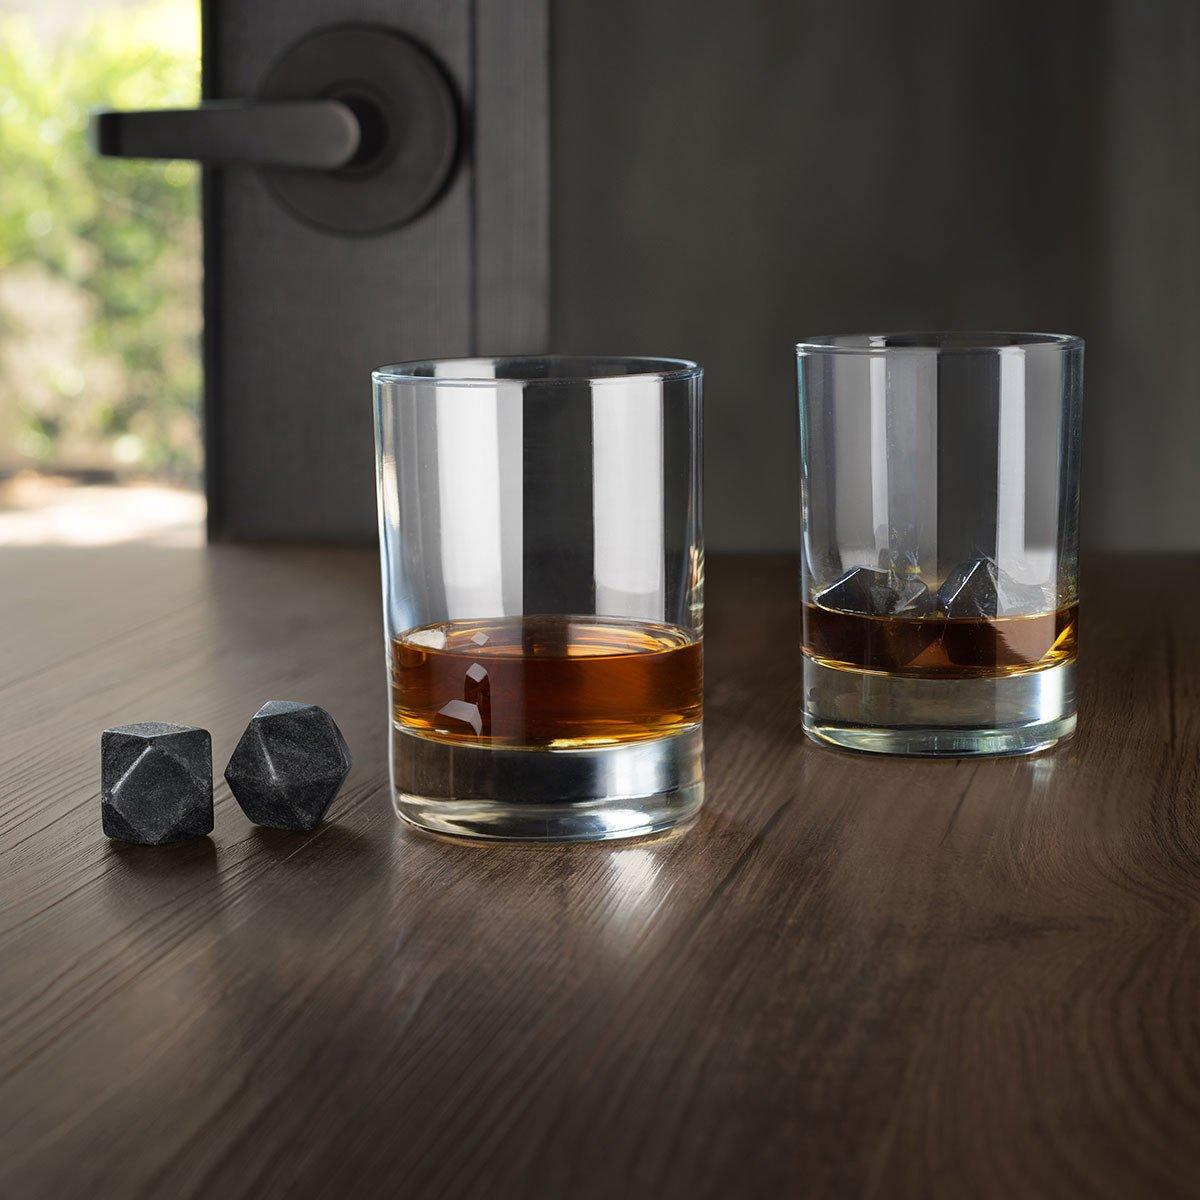 Glacier Rocks Hexagonal Ice Cubes (Set of 4)